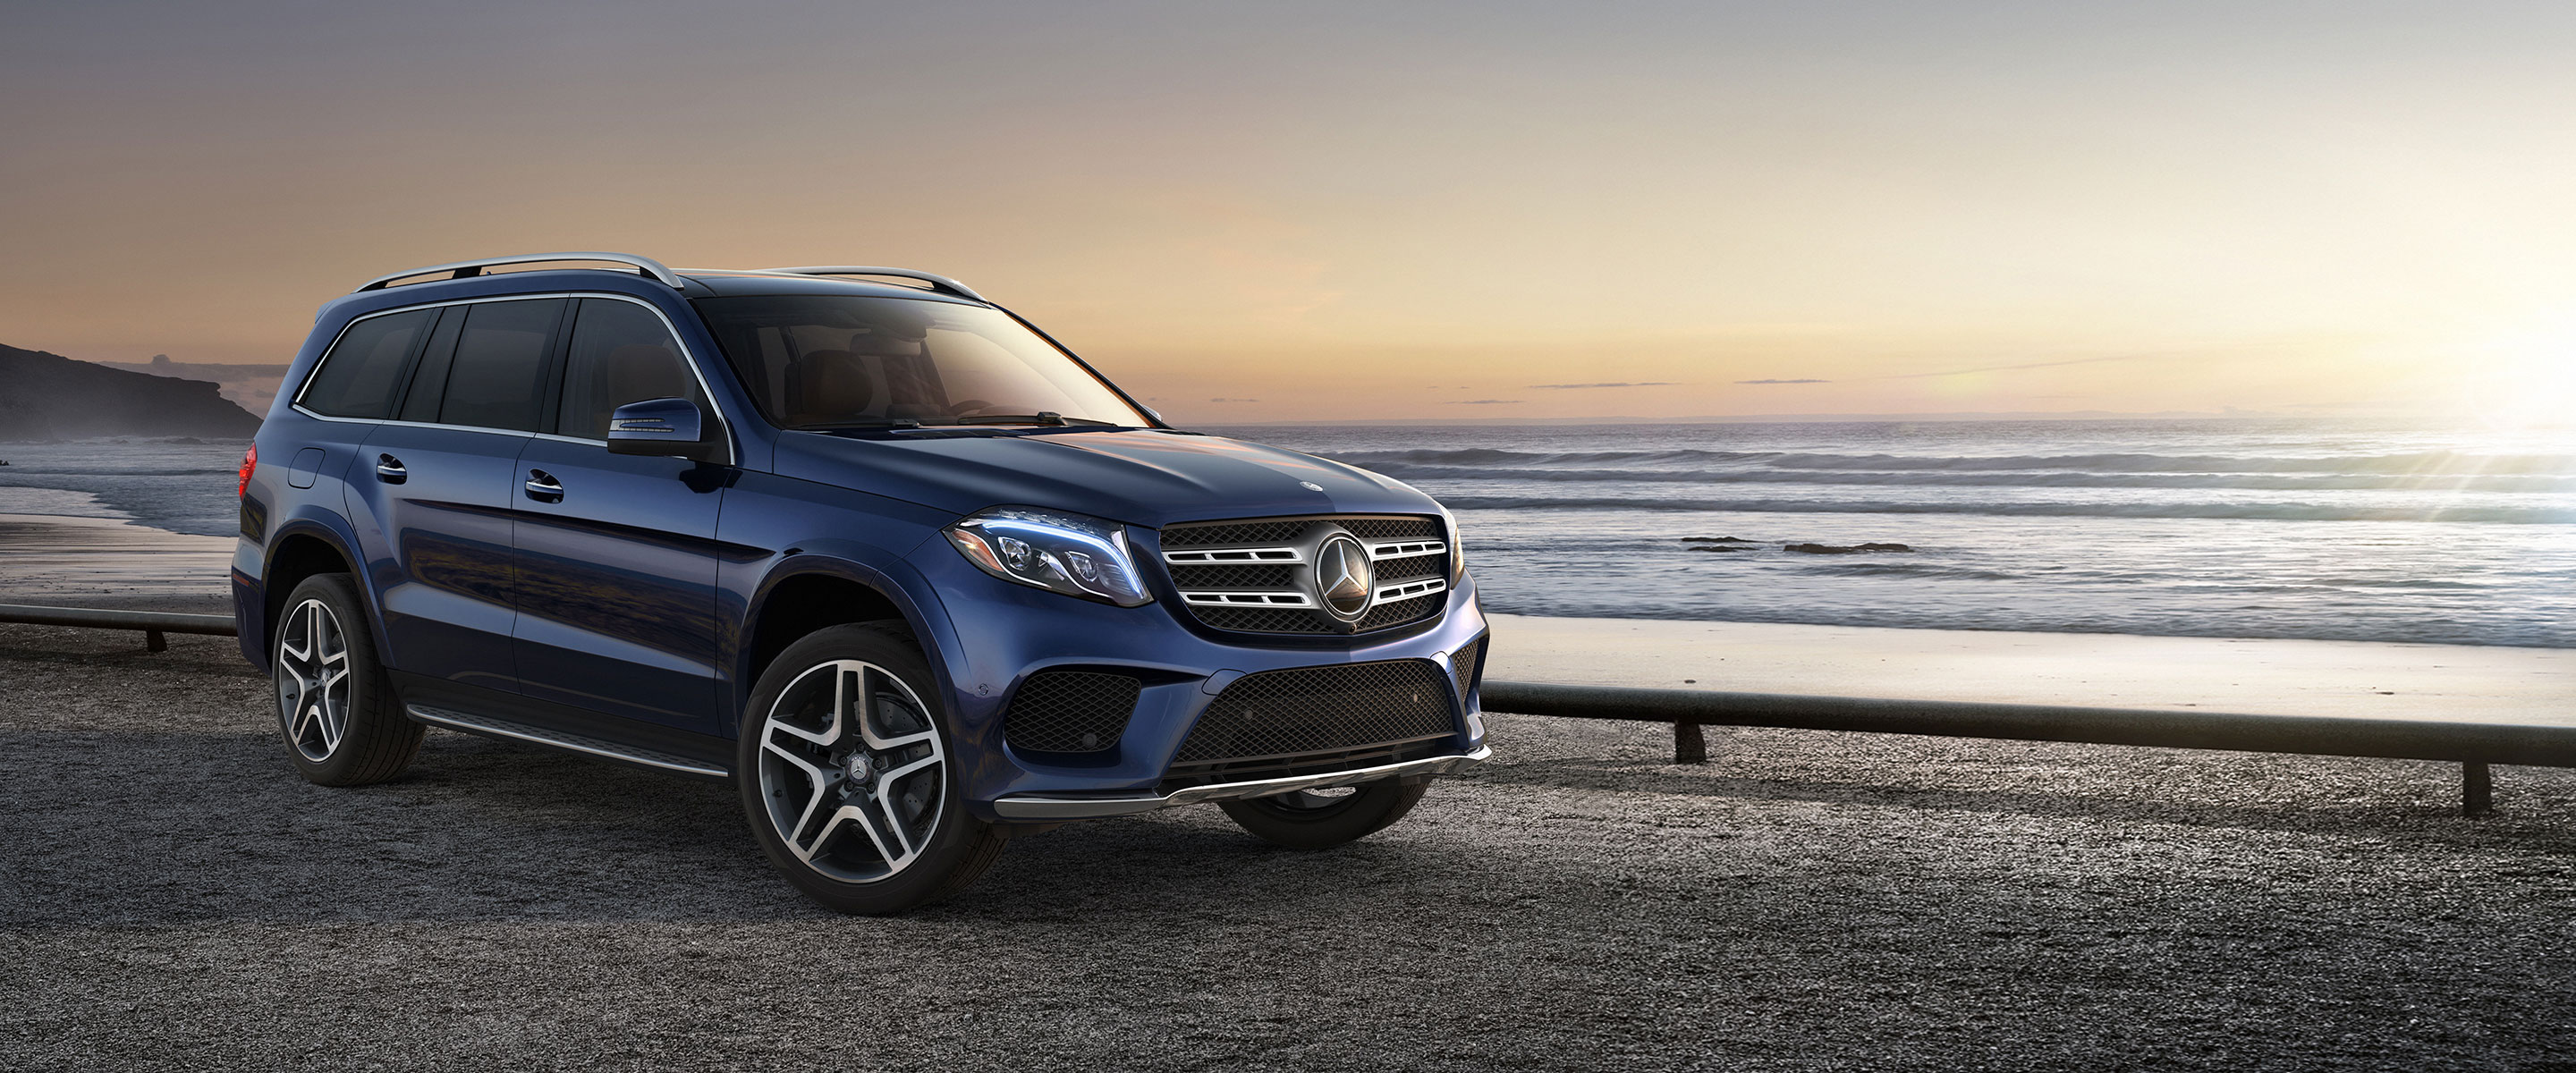 mercedes benz gls price lease ann arbor mi